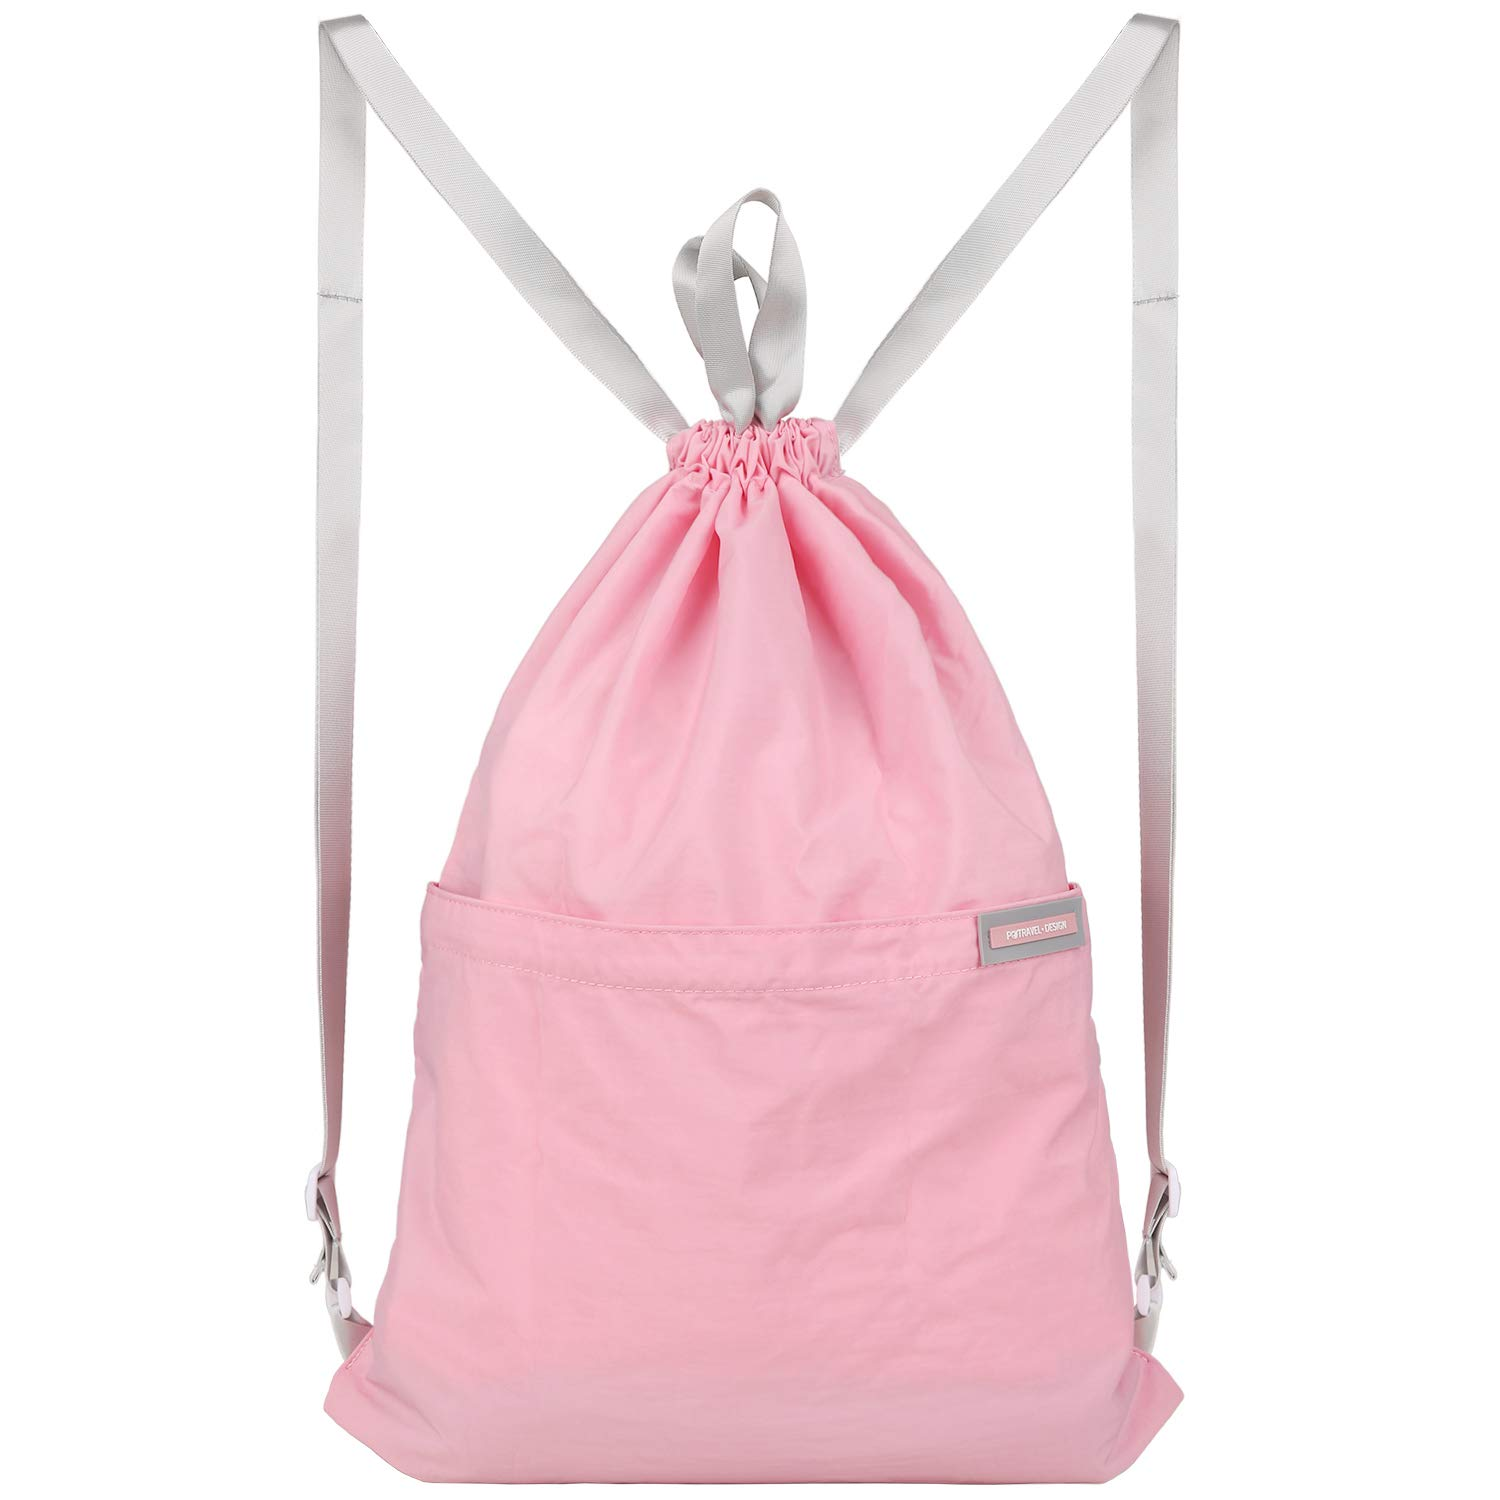 VanFn Drawstring Bags, Creative Design Gymsack, Unisex Sackpack, Students Casual Backpack, Sport's Equipment Bag, Unisex College Luggage & Travel Bags, School Style Backpacks for Teen (C - Pink)